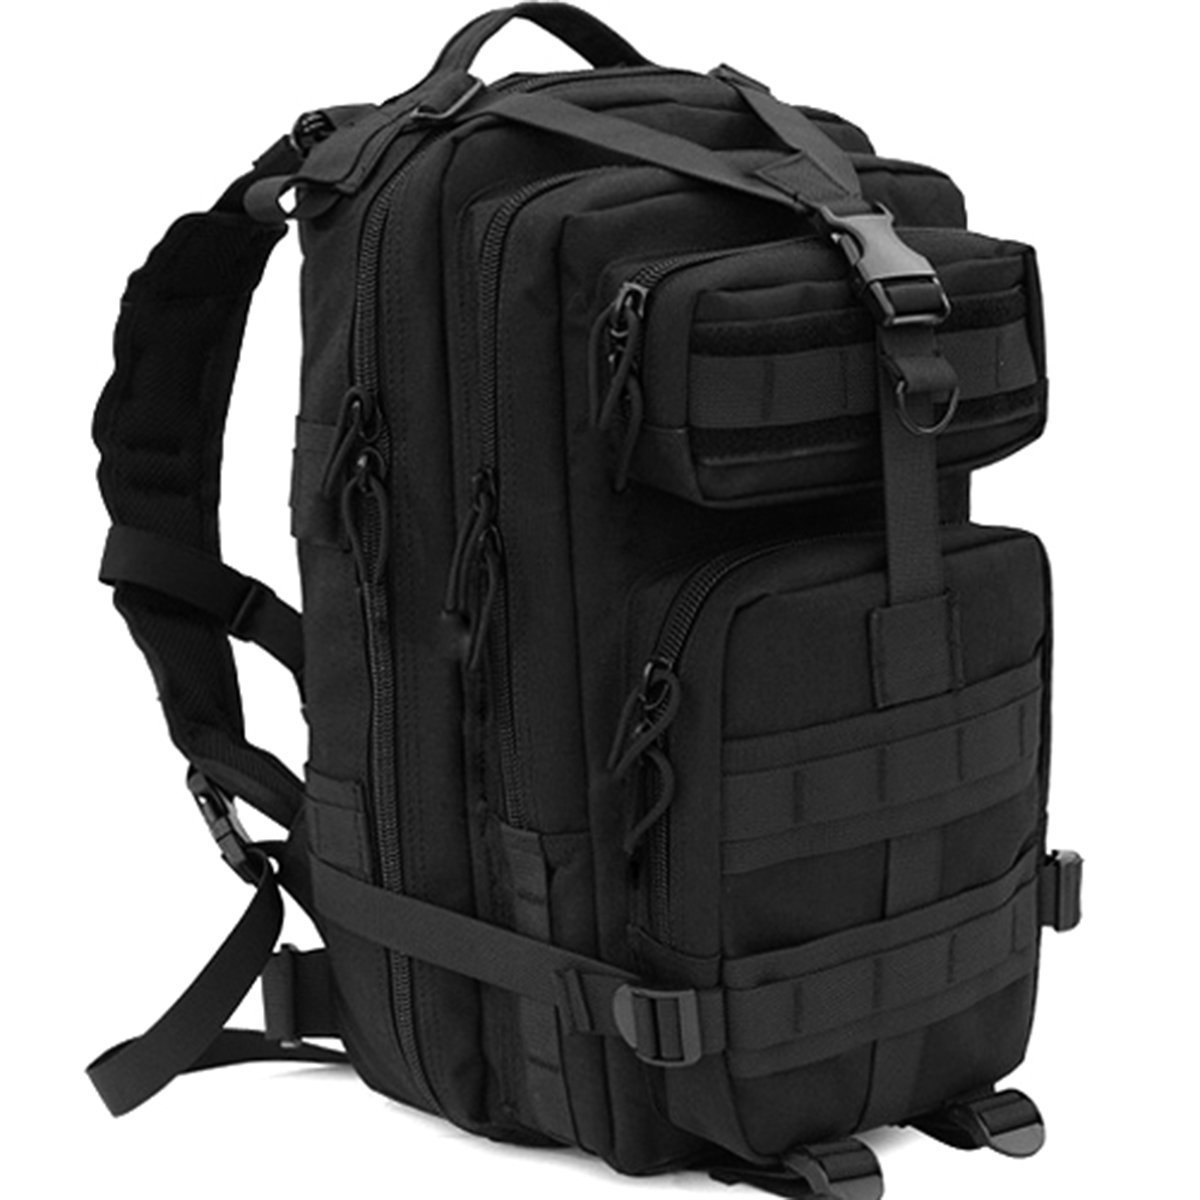 Swat Backpack:Ideal For Long Walks and Trails